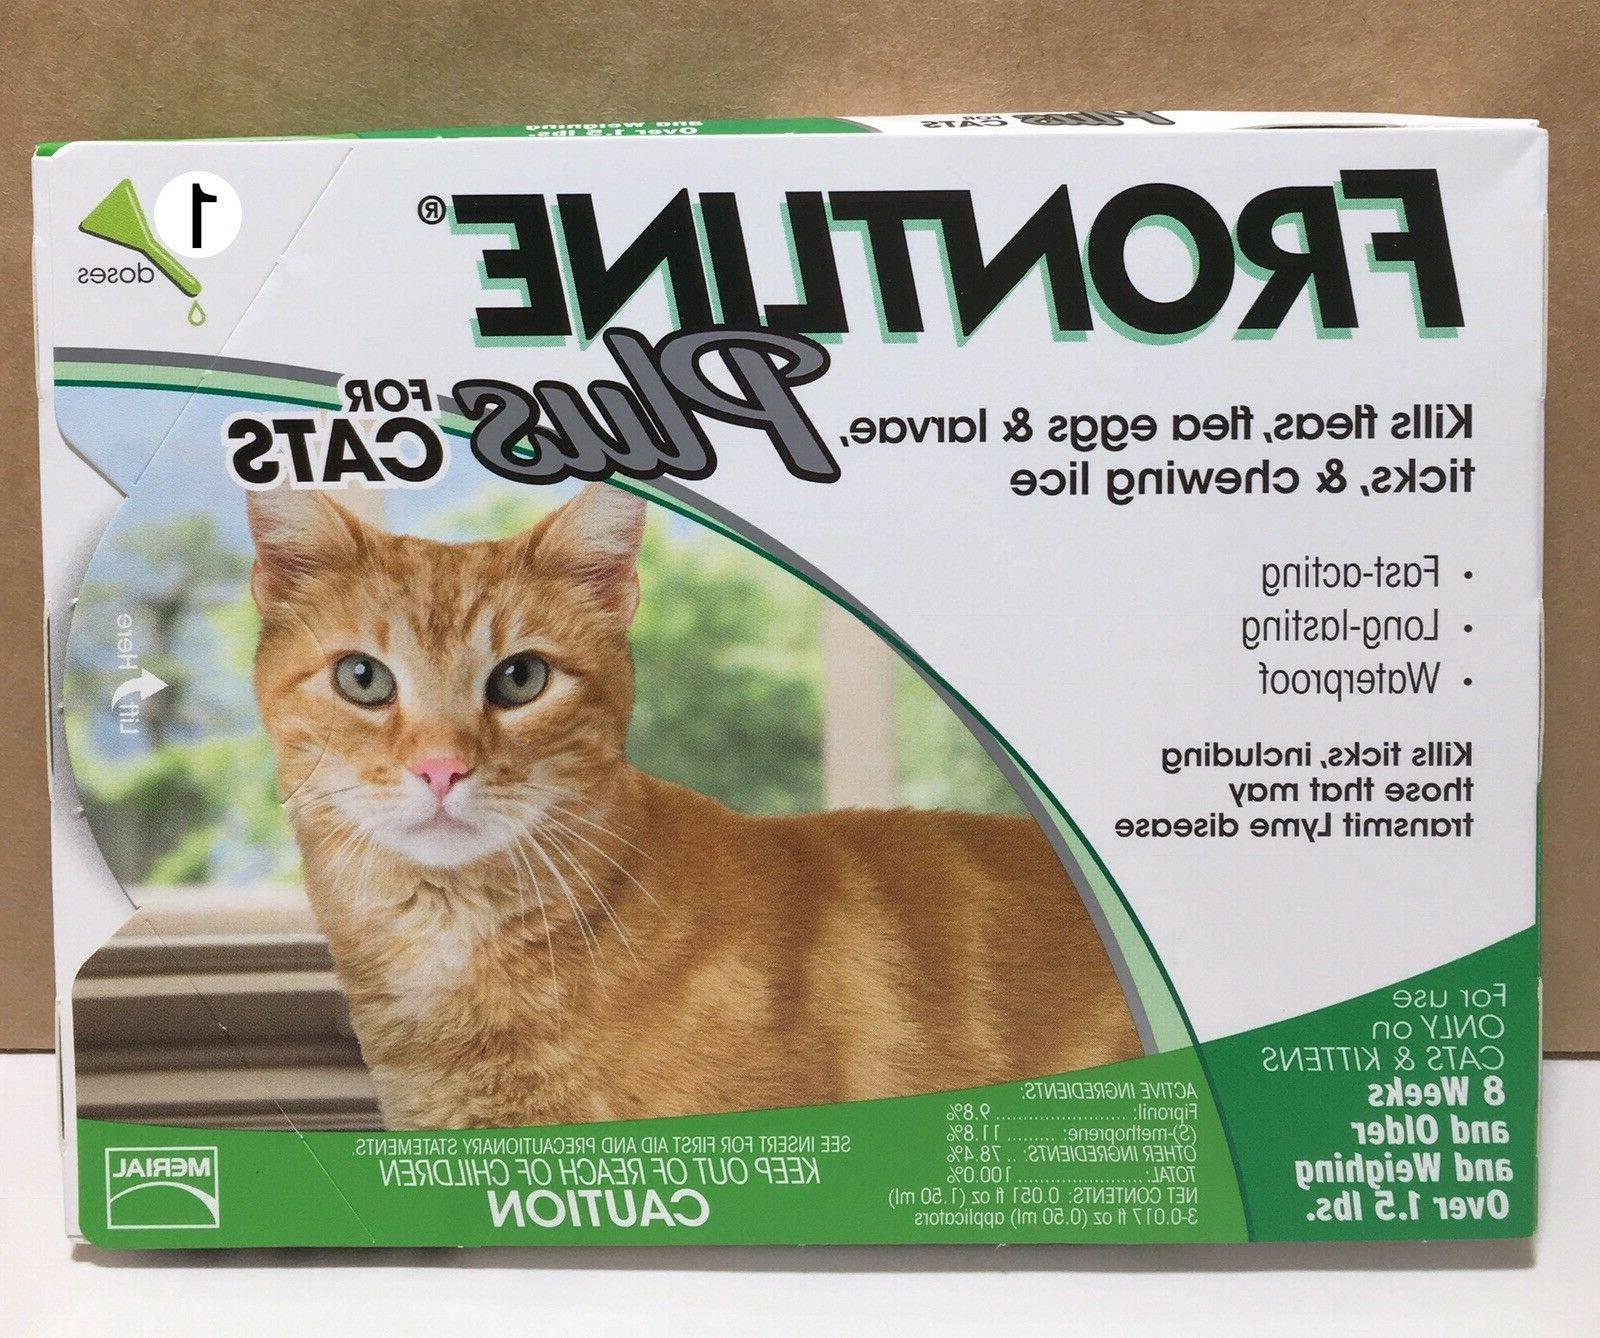 new plus for cats and kittens kill